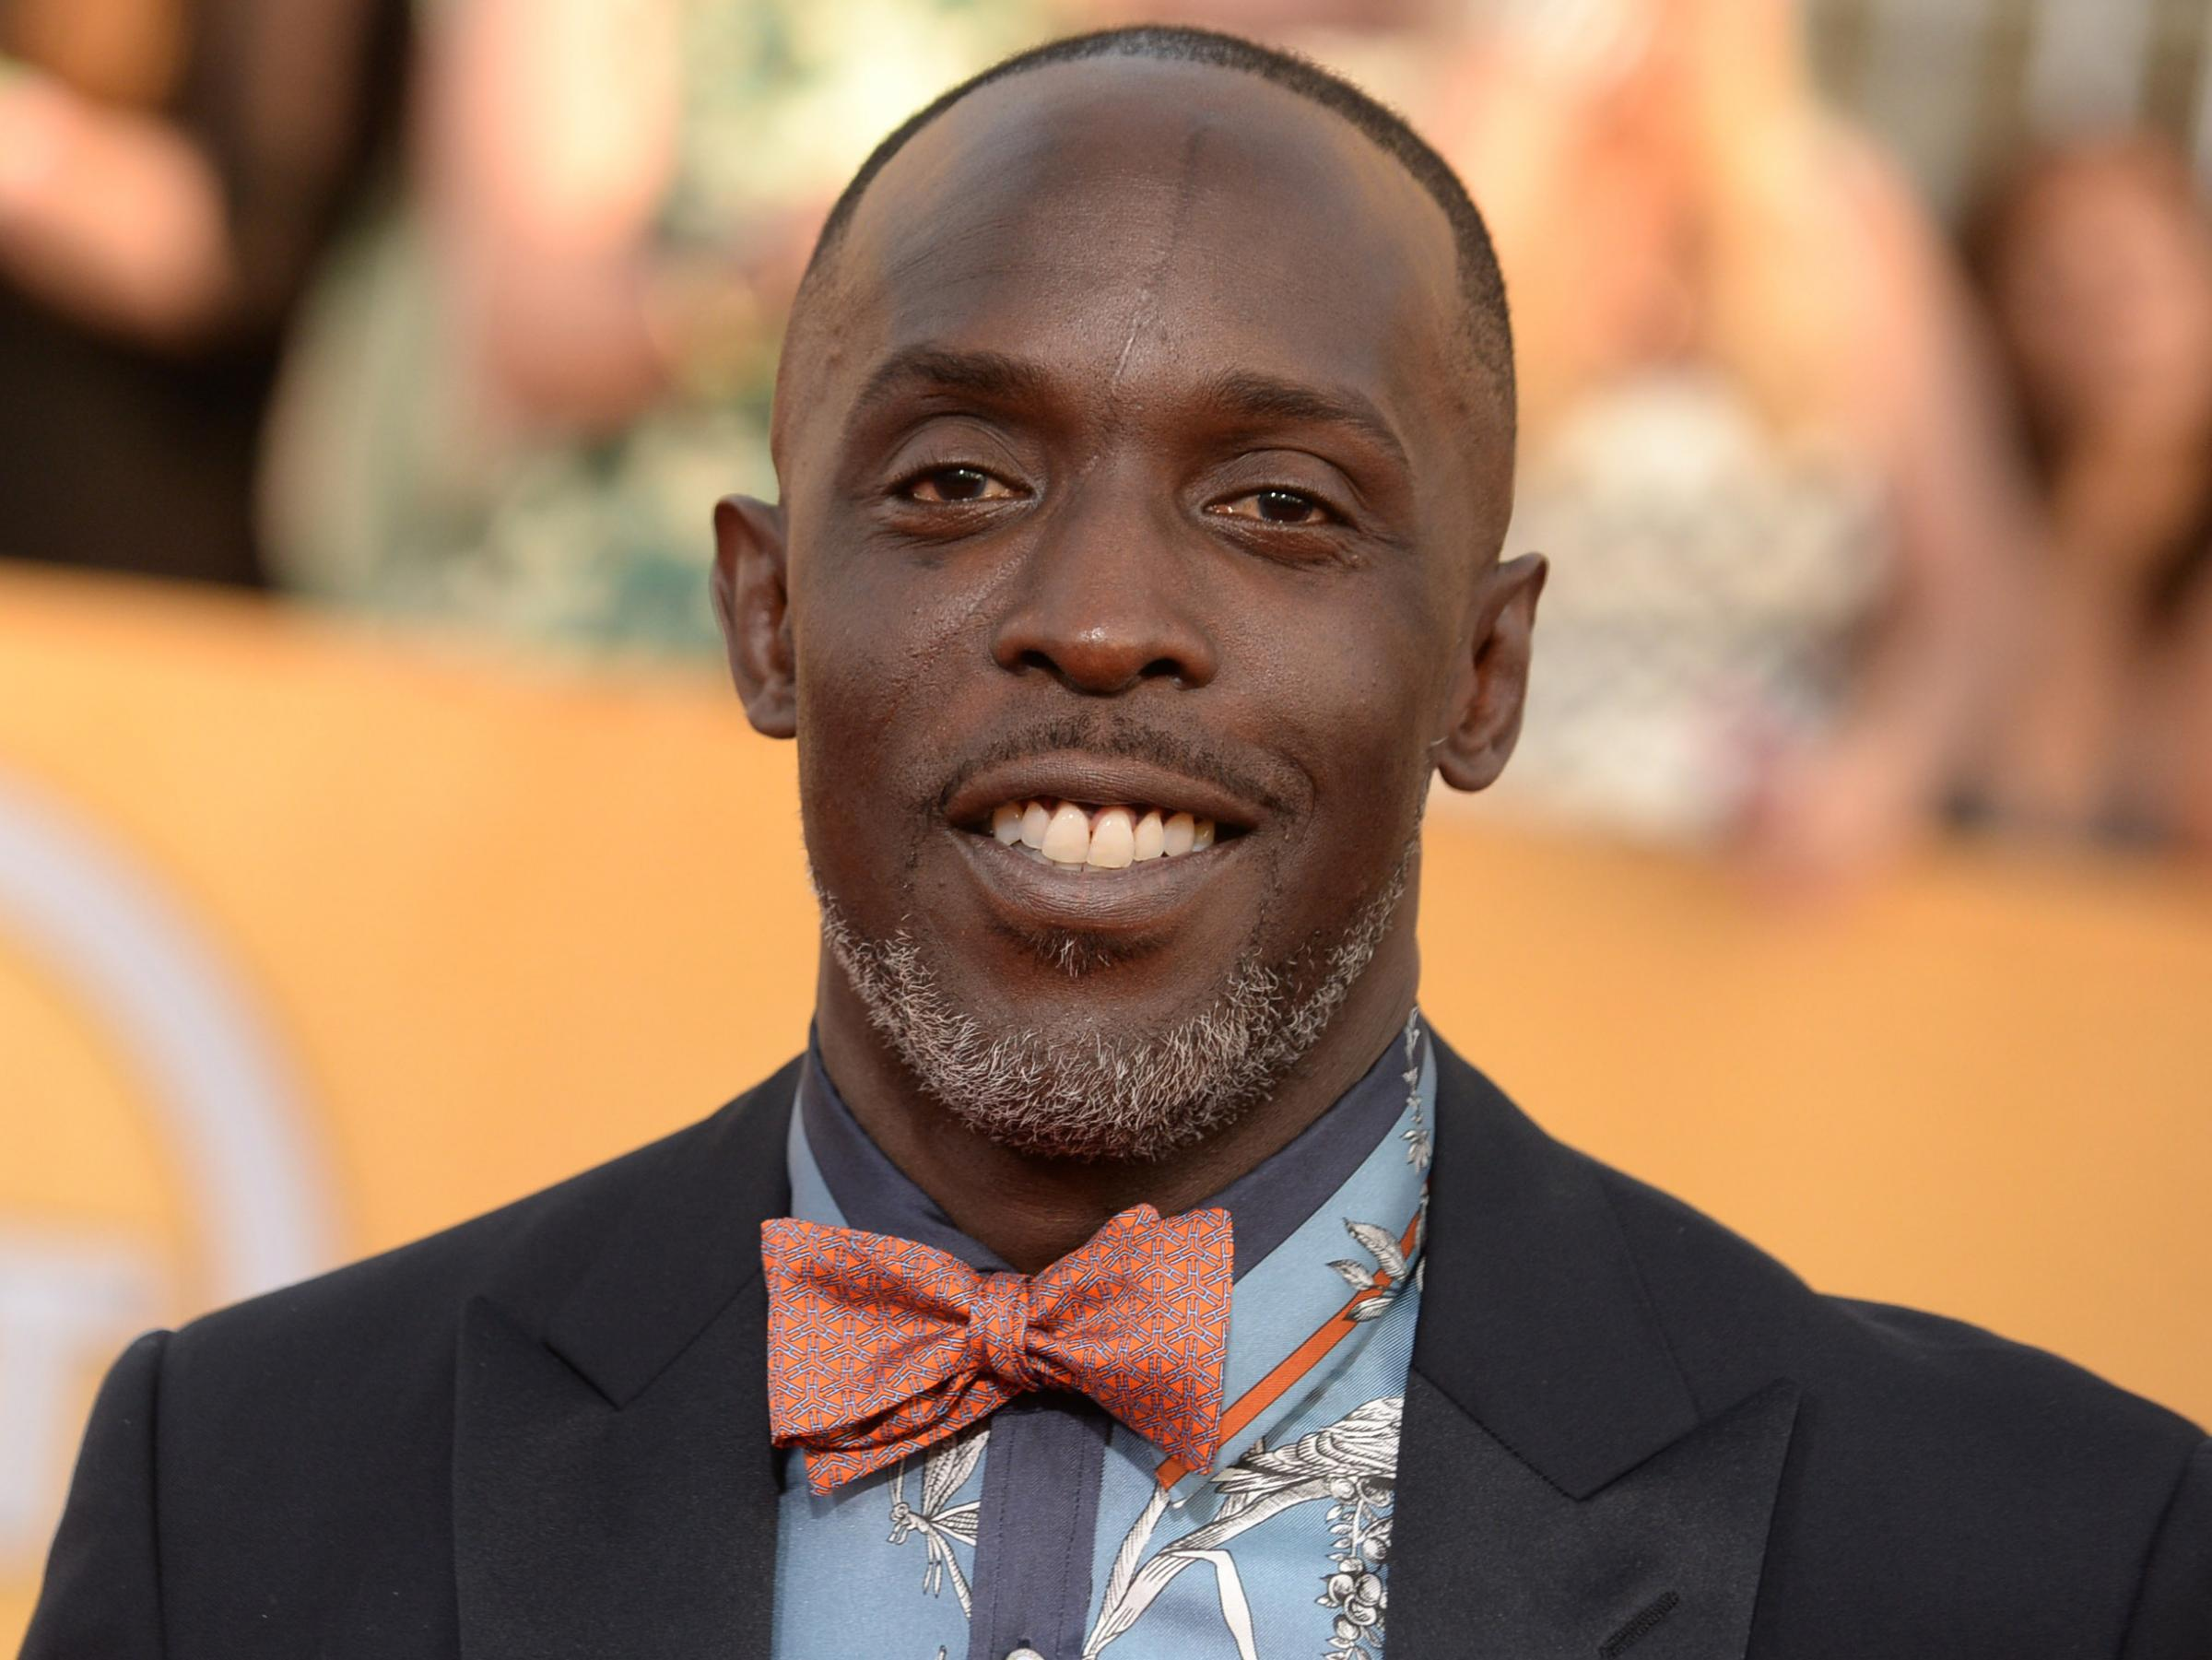 Michael K. Williams Michael K Williams pic